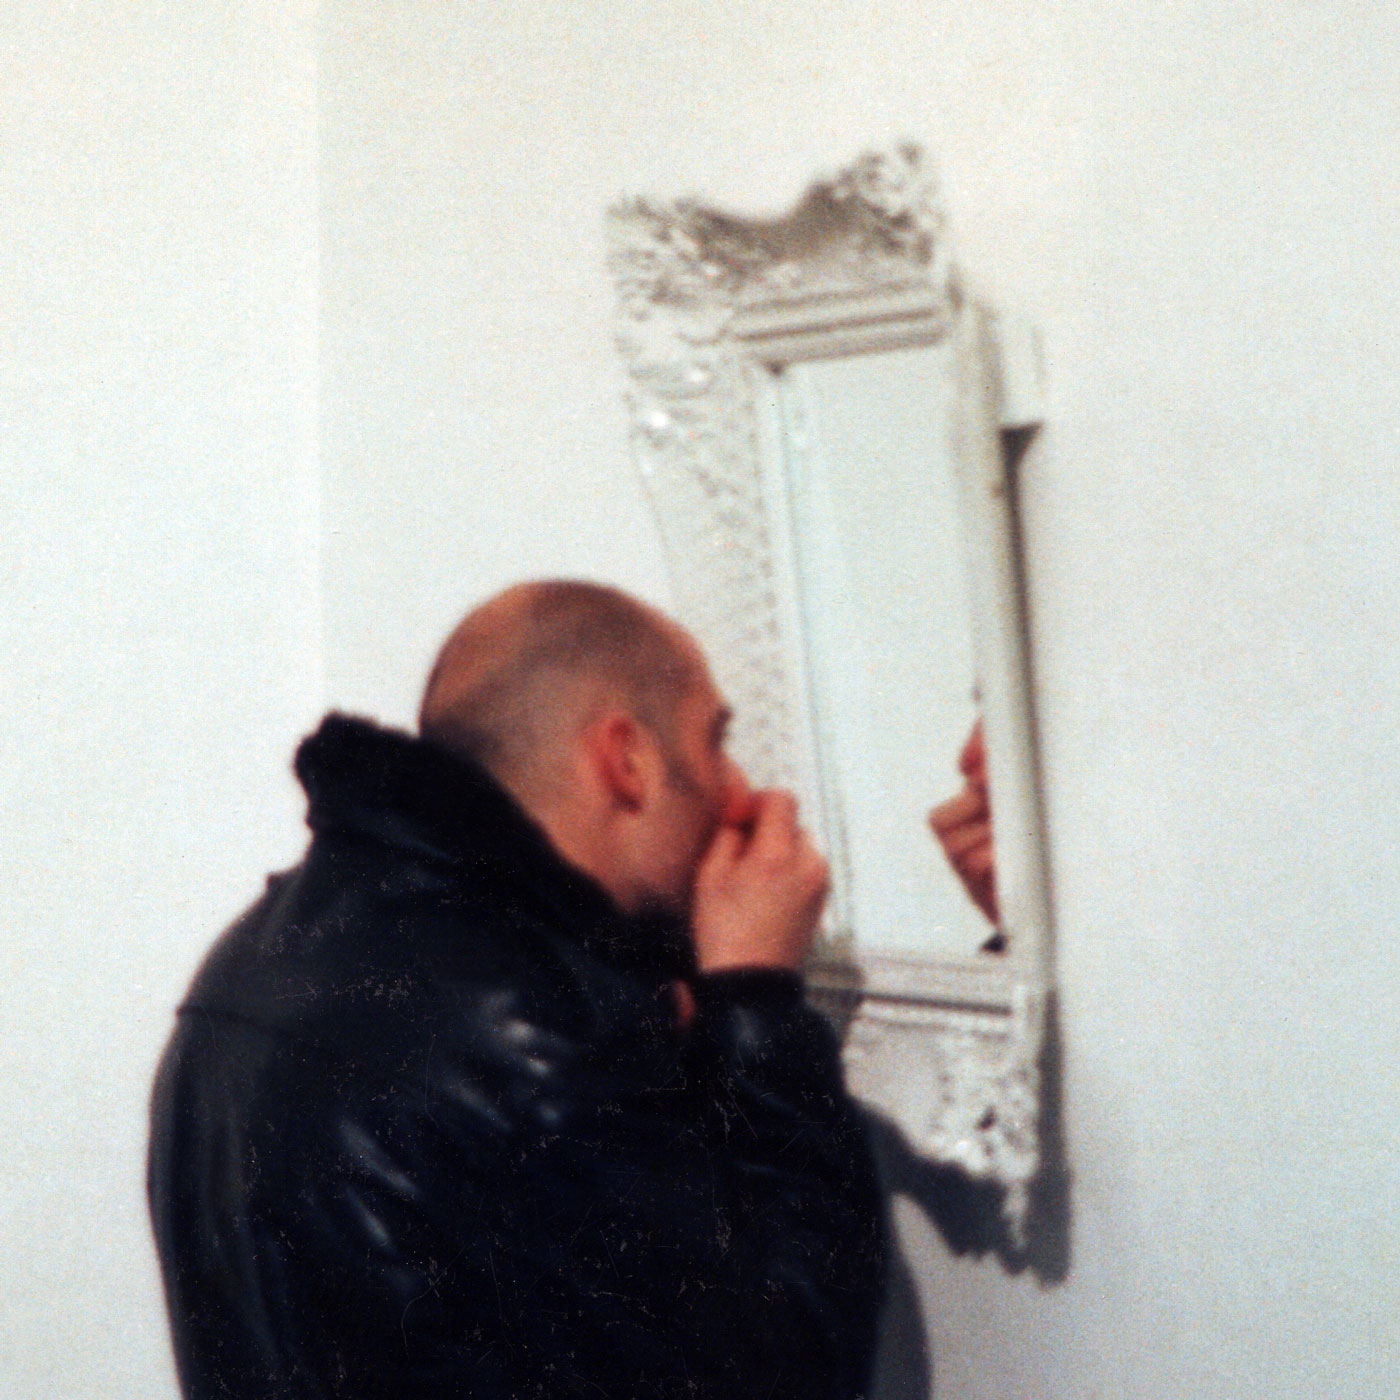 REPLYING MIRROR,  © 1997, plastic, varnishing, glass mirror, sound chip, 70 x 35 x 7 cm